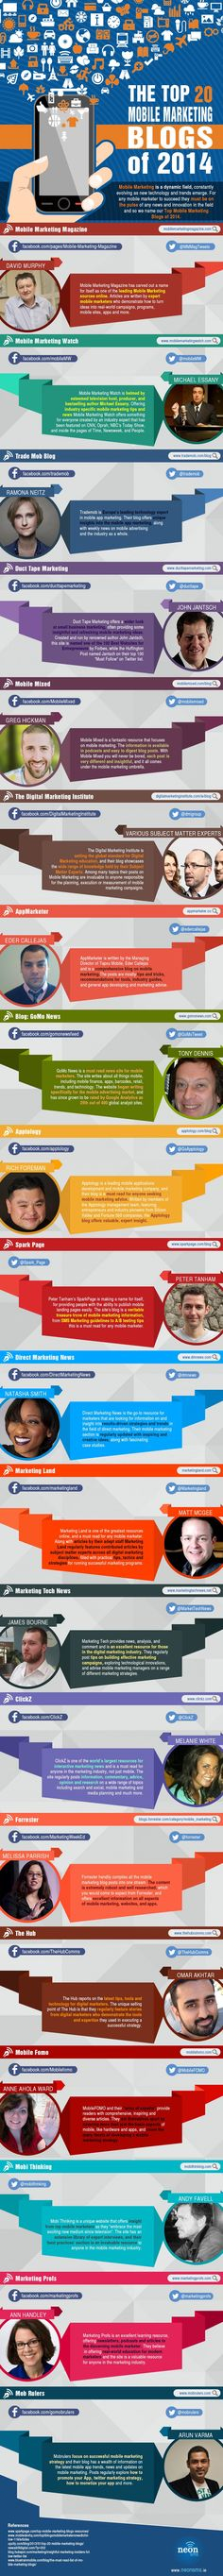 The Top 20 Mobile #Marketing Blogs of 2014:  Mobile marketing is a dynamic field, constantly evolving as new technology and trends emerge. For any mobile marketer to succeed they must be on the pulse of any news an innovation in the filed.  This infographic  is a must read for any innovative mobile marketer looking for tips, trends, and inspiration on how to run a successful mobile marketing campaign.